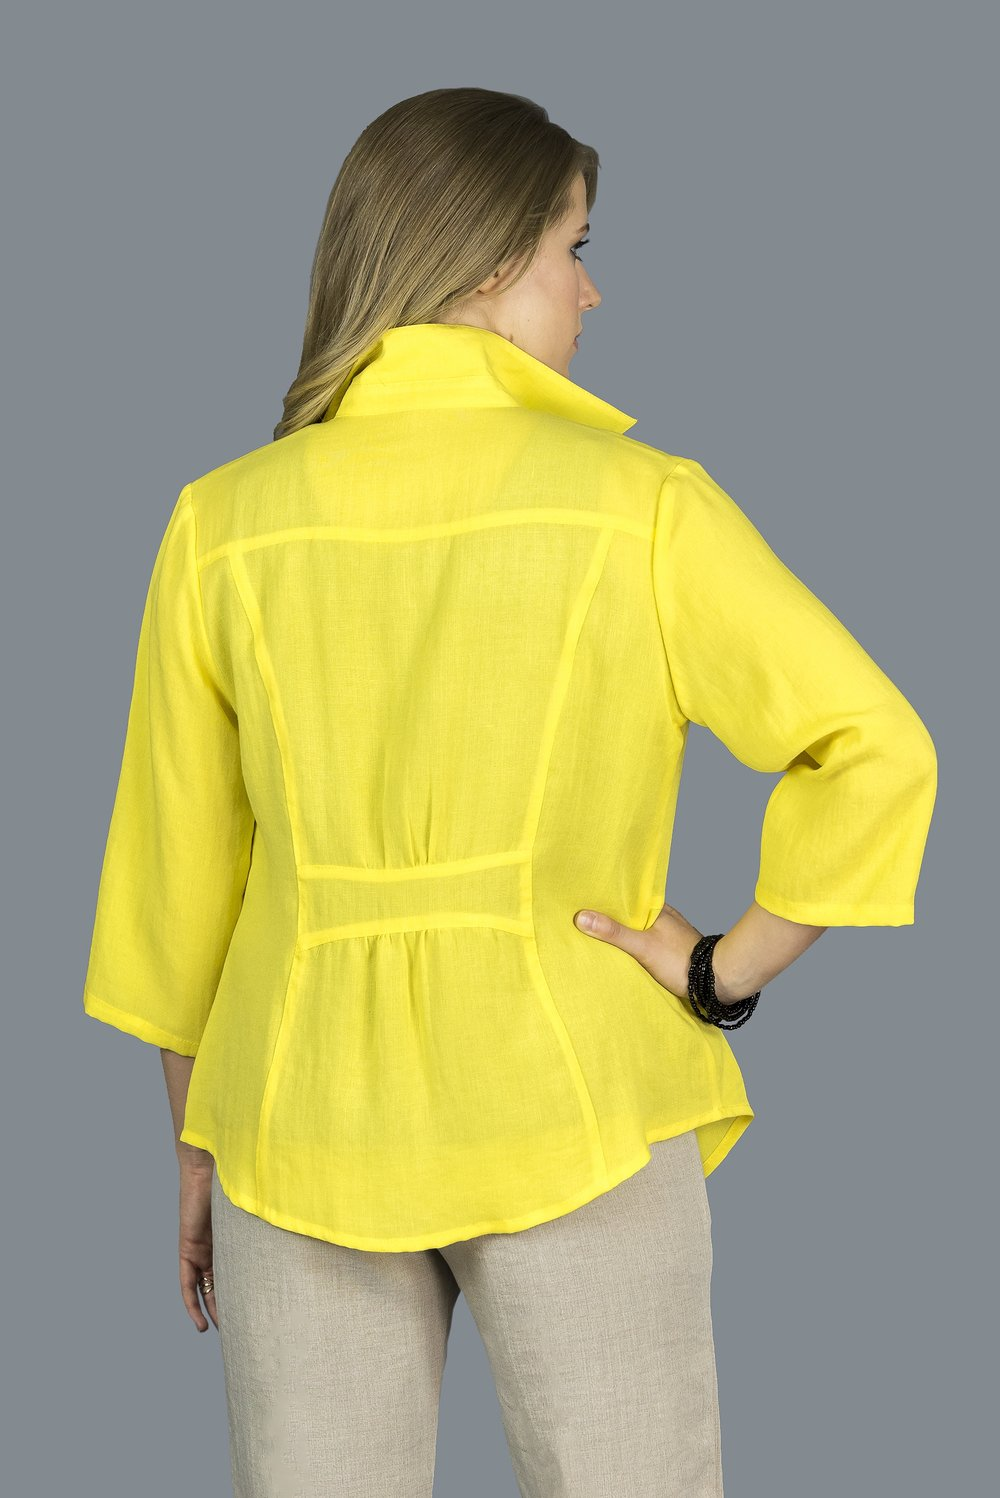 AA207 - Shirt with Banded Back    CL3981 - Daffodil